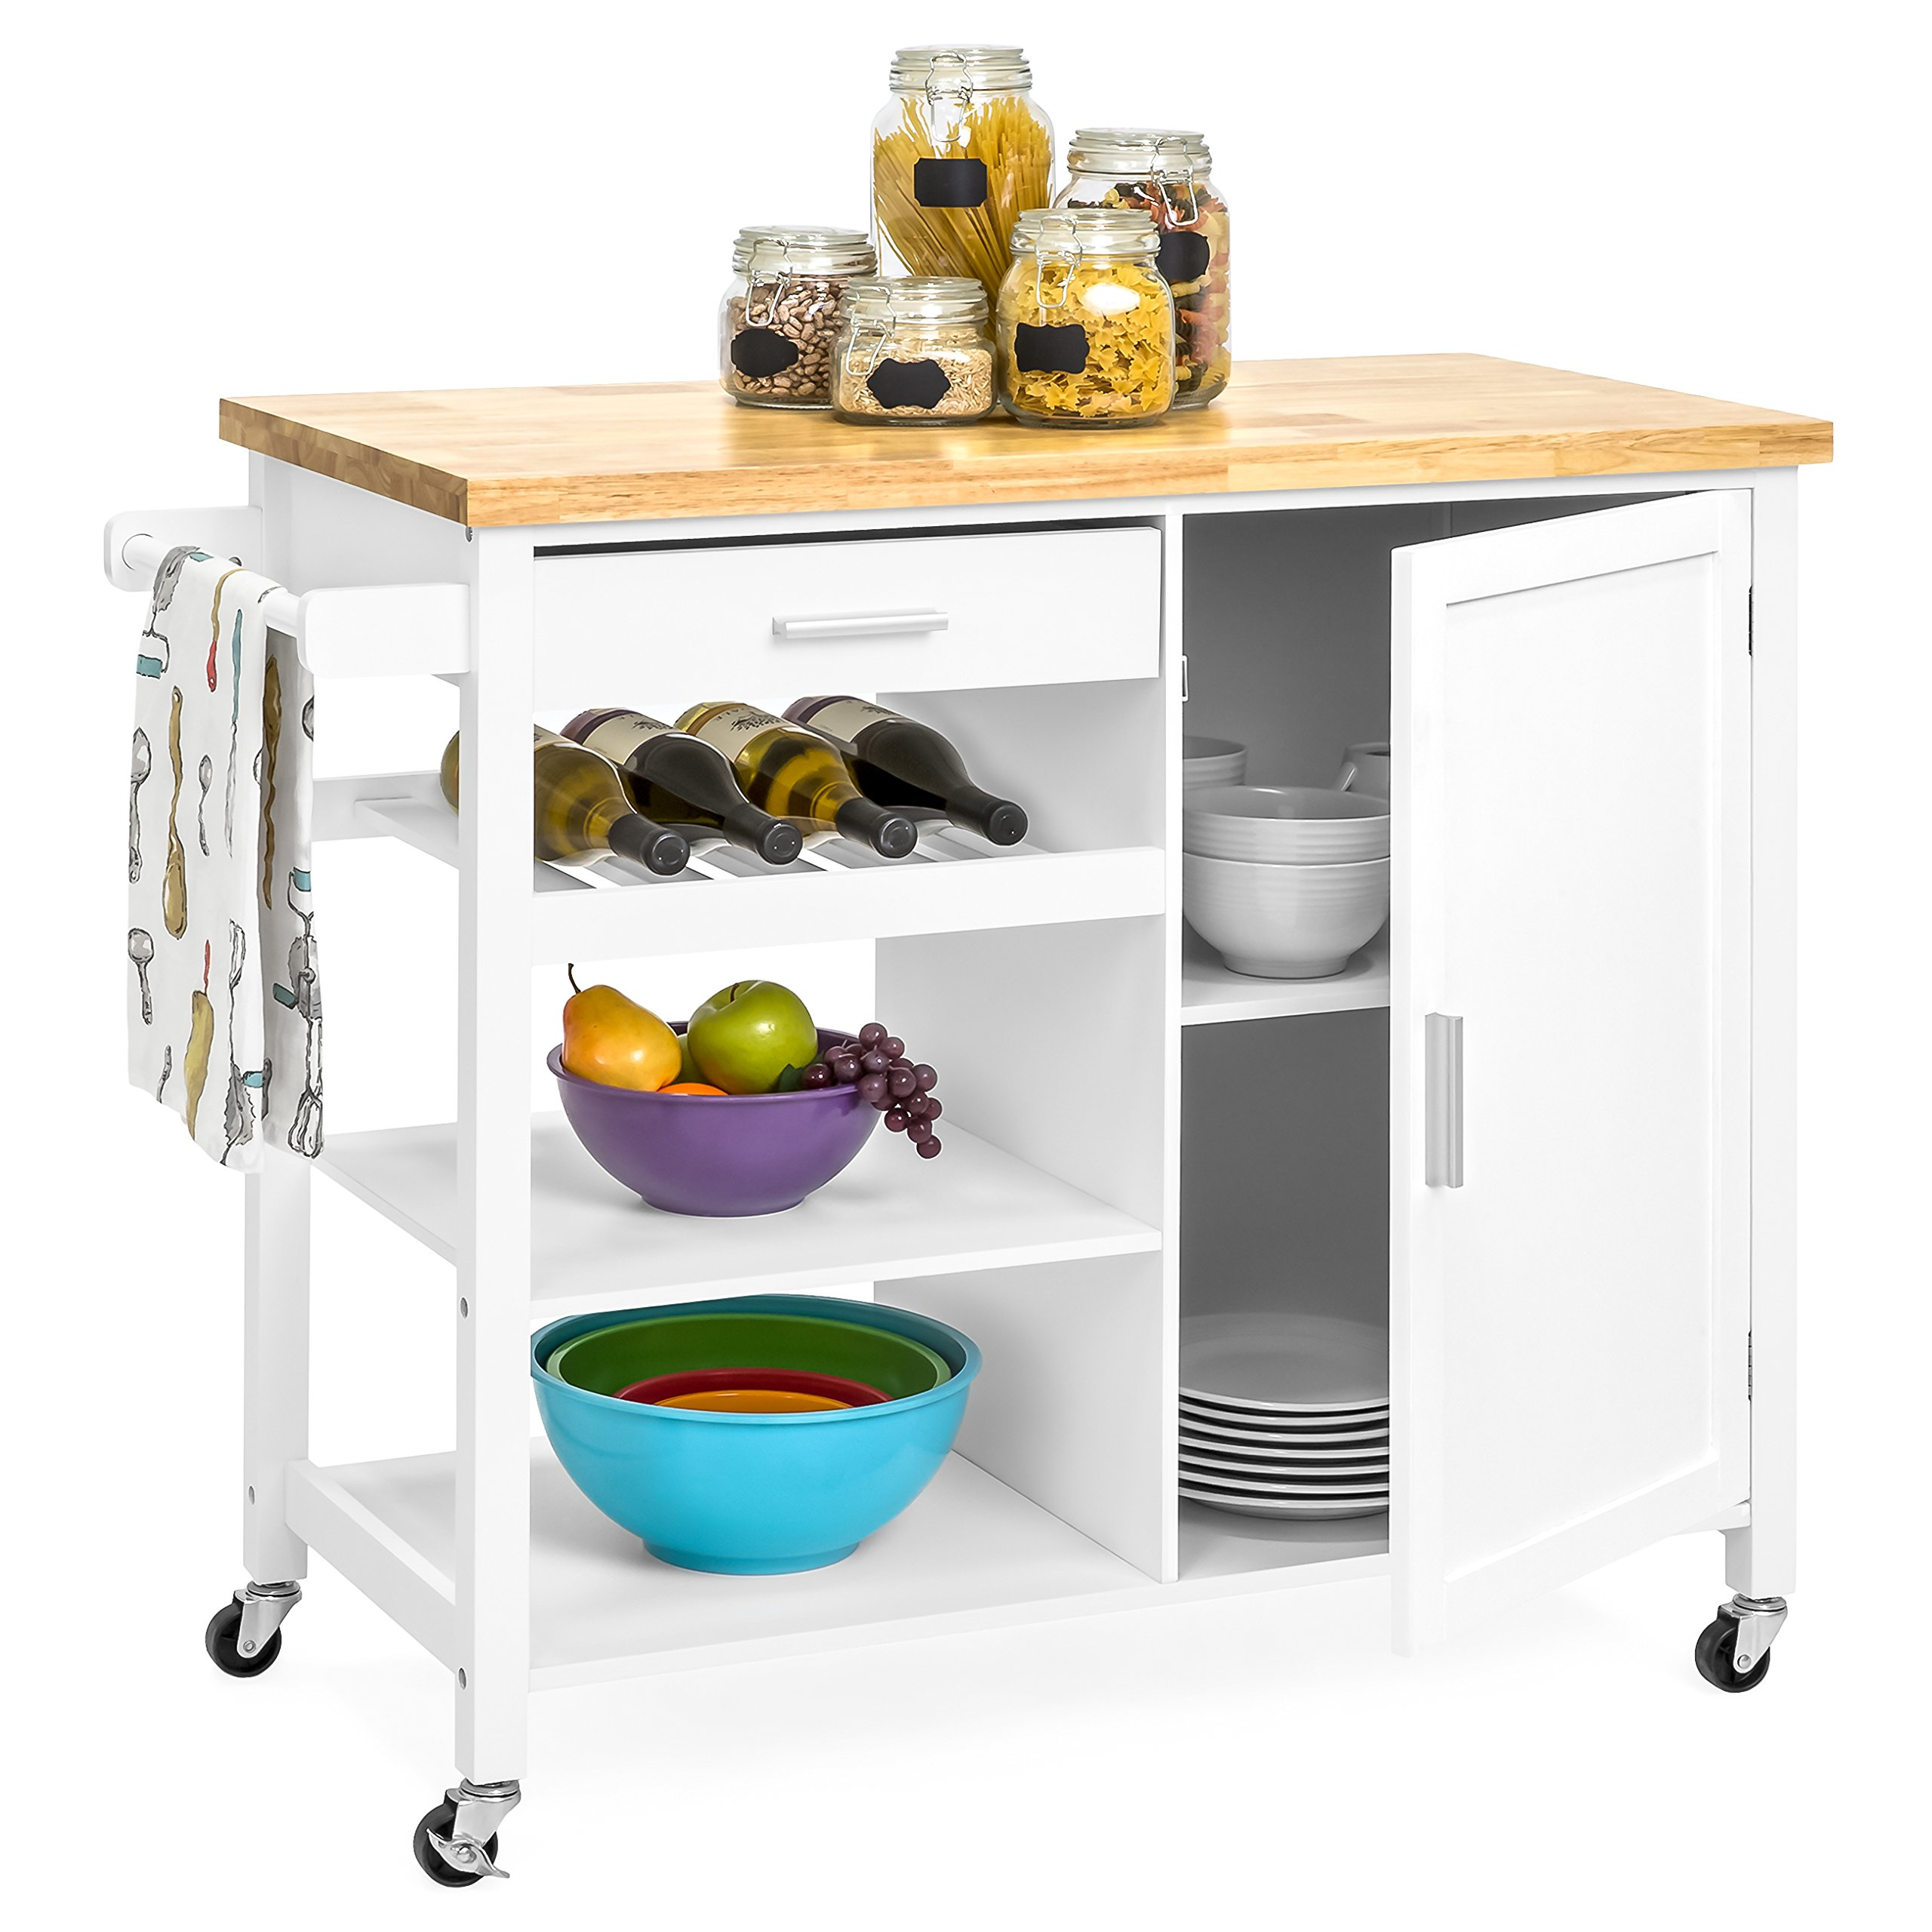 Best Choice Products Portable Kitchen Island Storage Cocktail Cart w/Wood Top, Wine Shelf, Cabinet, Drawer, Towel Rack by Best Choice Products